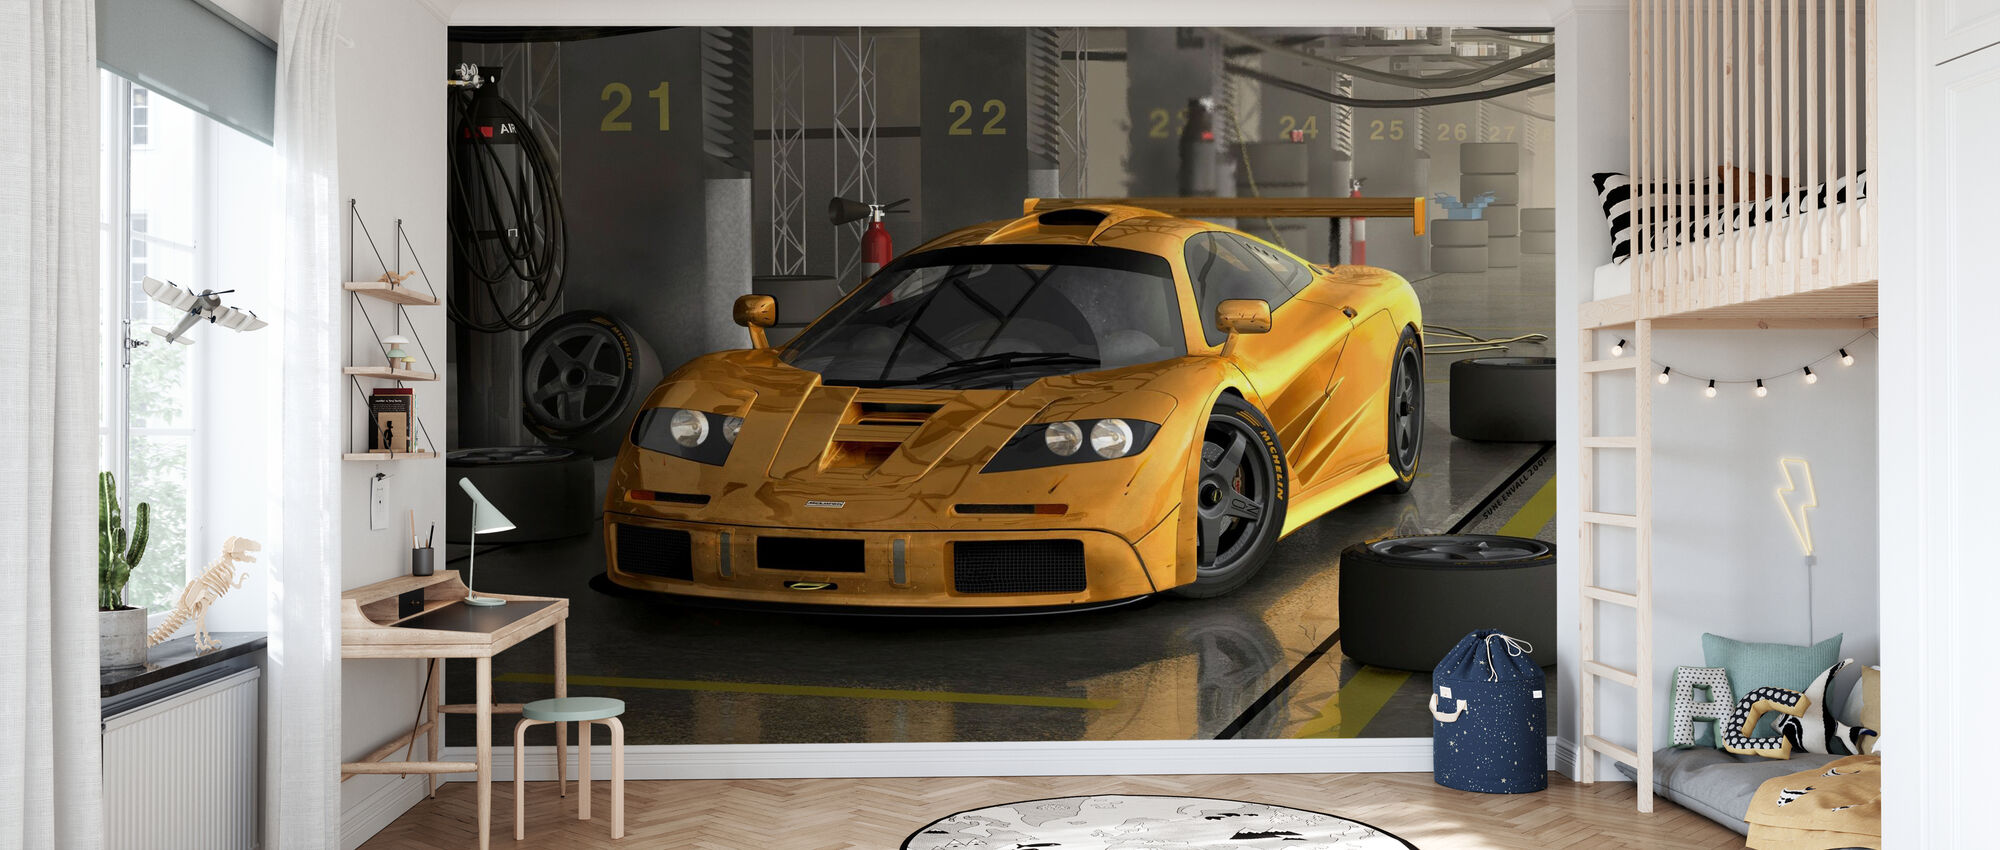 Fast Car - Wallpaper - Kids Room